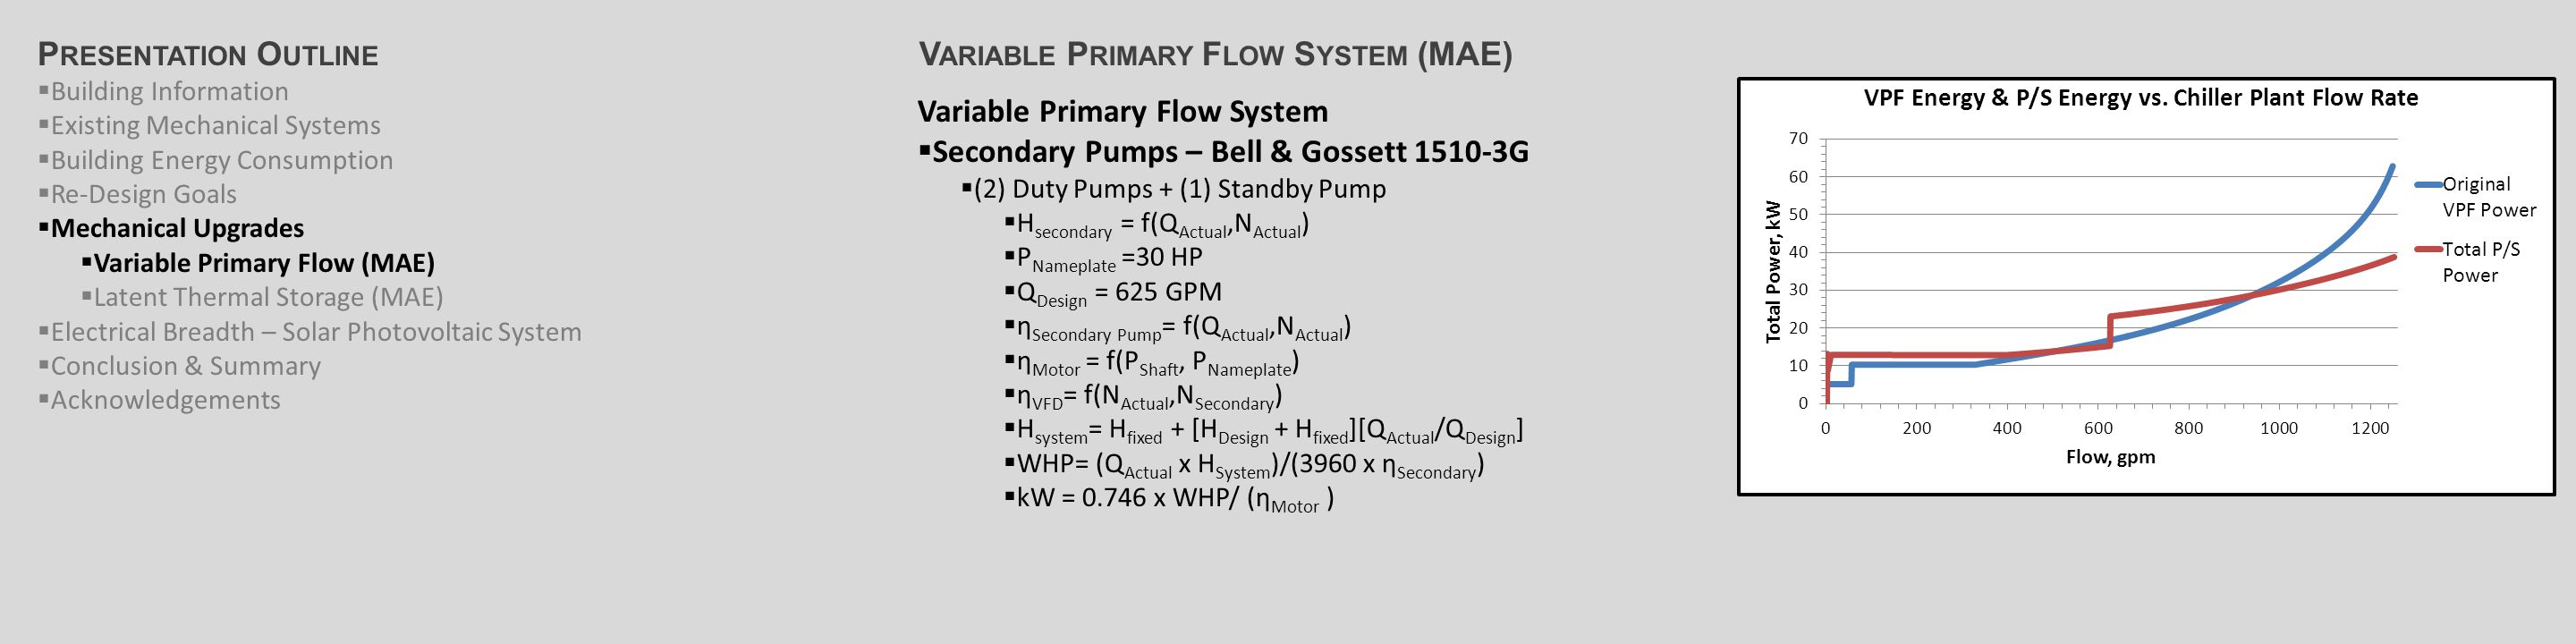 Variable Primary Flow System  Secondary Pumps – Bell & Gossett 1510-3G  (2) Duty Pumps + (1) Standby Pump  H secondary = f(Q Actual,N Actual )  P Nameplate =30 HP  Q Design = 625 GPM  ƞ Secondary Pump = f(Q Actual,N Actual )  ƞ Motor = f(P Shaft, P Nameplate )  ƞ VFD = f(N Actual,N Secondary )  H system = H fixed + [H Design + H fixed ][Q Actual /Q Design ]  WHP= (Q Actual x H System )/(3960 x ƞ Secondary )  kW = 0.746 x WHP/ (ƞ Motor ) V ARIABLE P RIMARY F LOW S YSTEM (MAE)P RESENTATION O UTLINE  Building Information  Existing Mechanical Systems  Building Energy Consumption  Re-Design Goals  Mechanical Upgrades  Variable Primary Flow (MAE)  Latent Thermal Storage (MAE)  Electrical Breadth – Solar Photovoltaic System  Conclusion & Summary  Acknowledgements